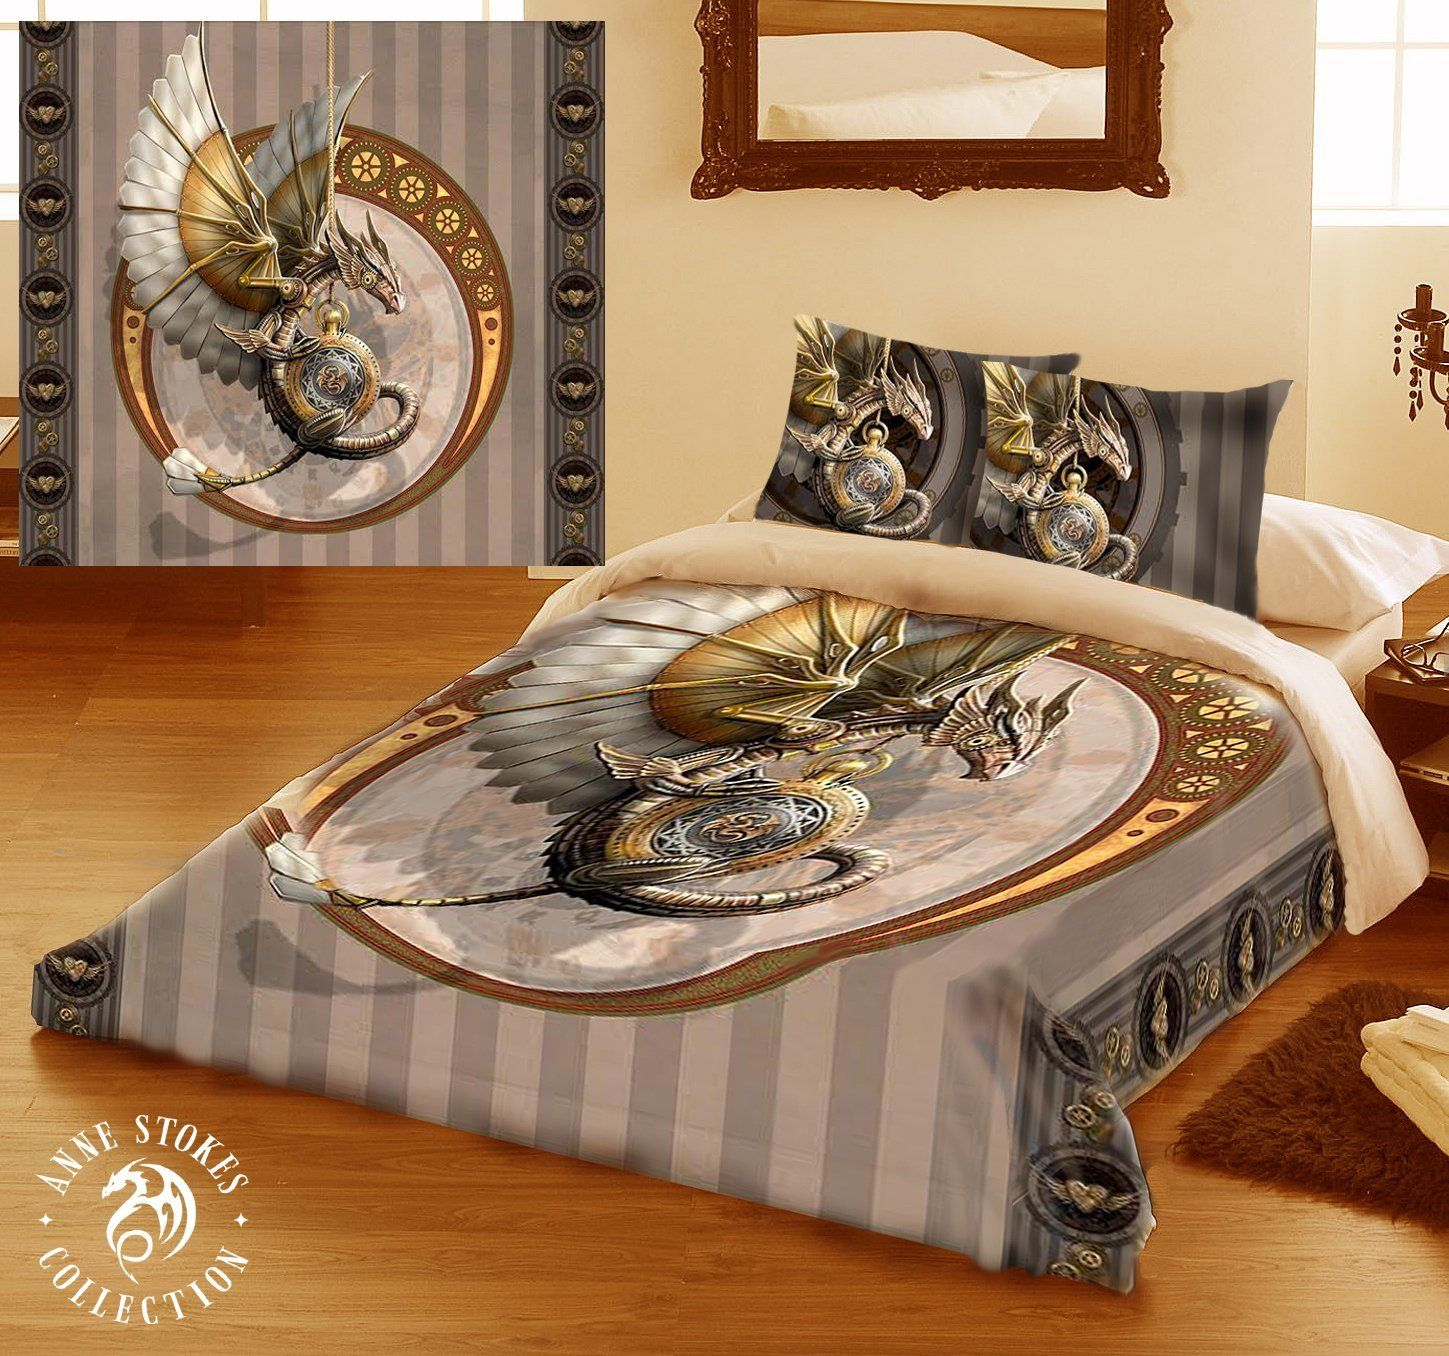 Bien-aimé Steampunk #Dragon #Bedding Set Pillow Cases and Quilt | Dragon  SM99